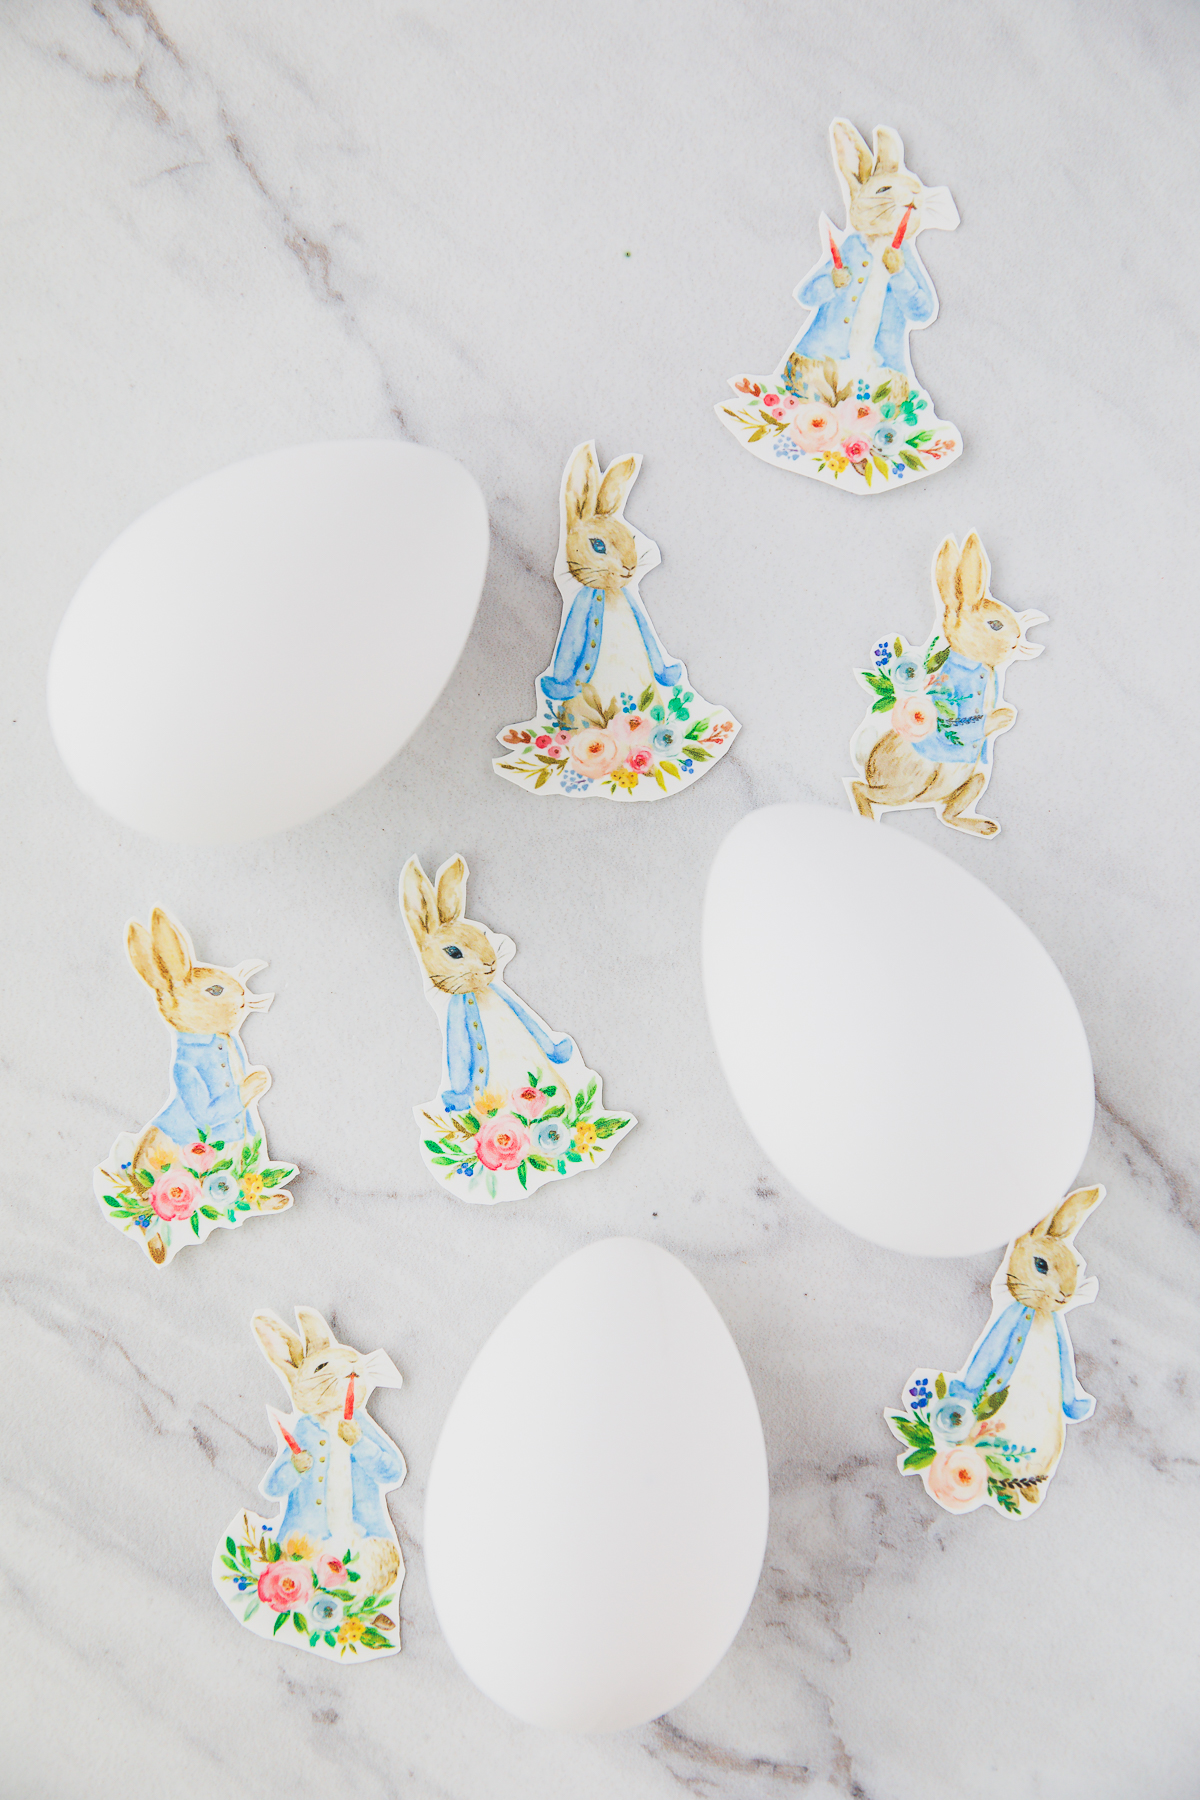 clear waterslide decal paper on eggs